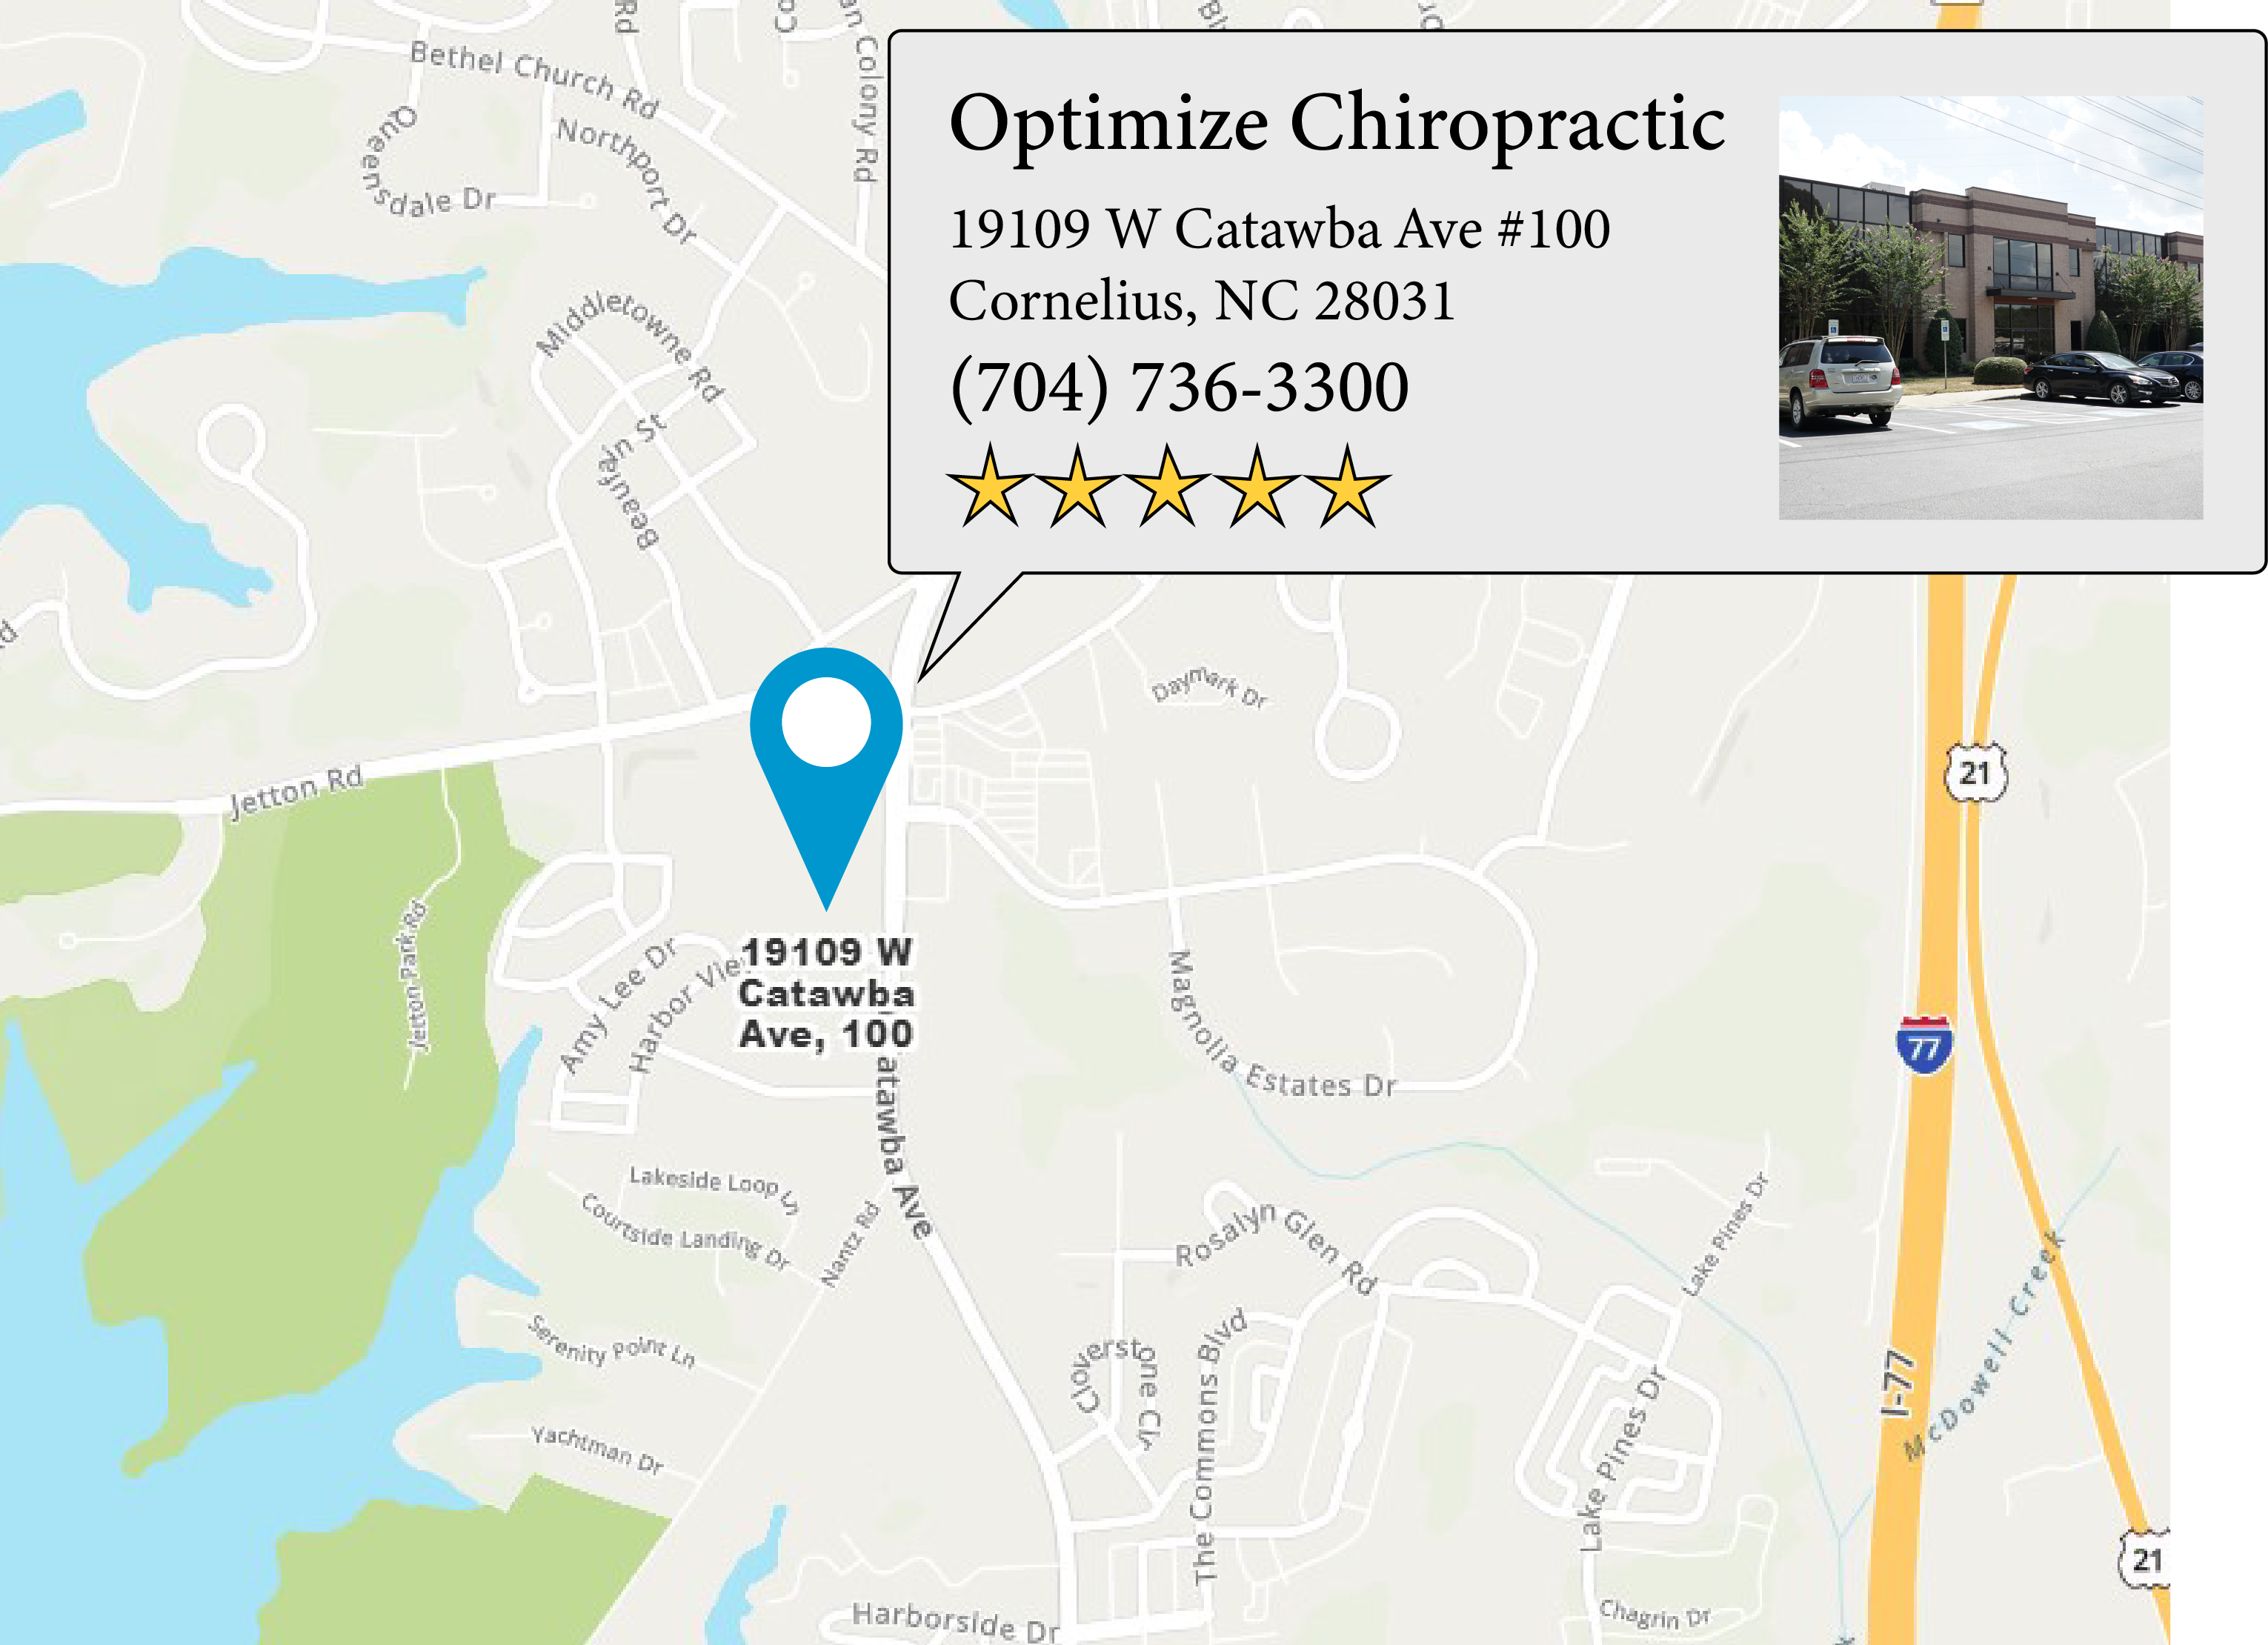 Optimize Chiropractic 's location on google map